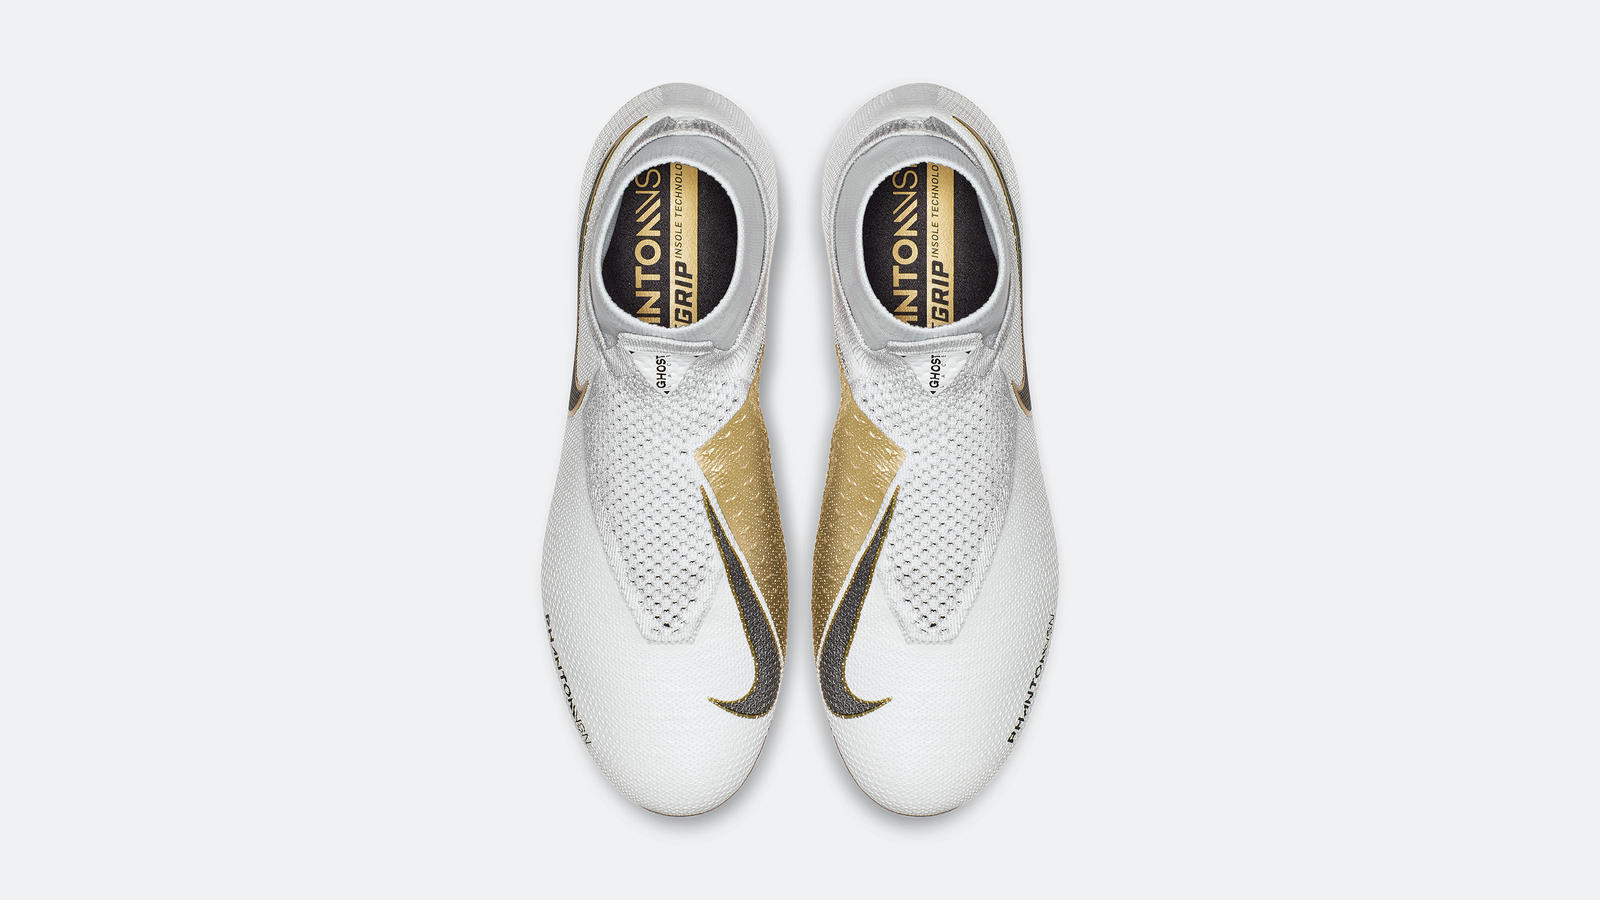 Nikefootball goldphantom 2018 re 4 native 1600